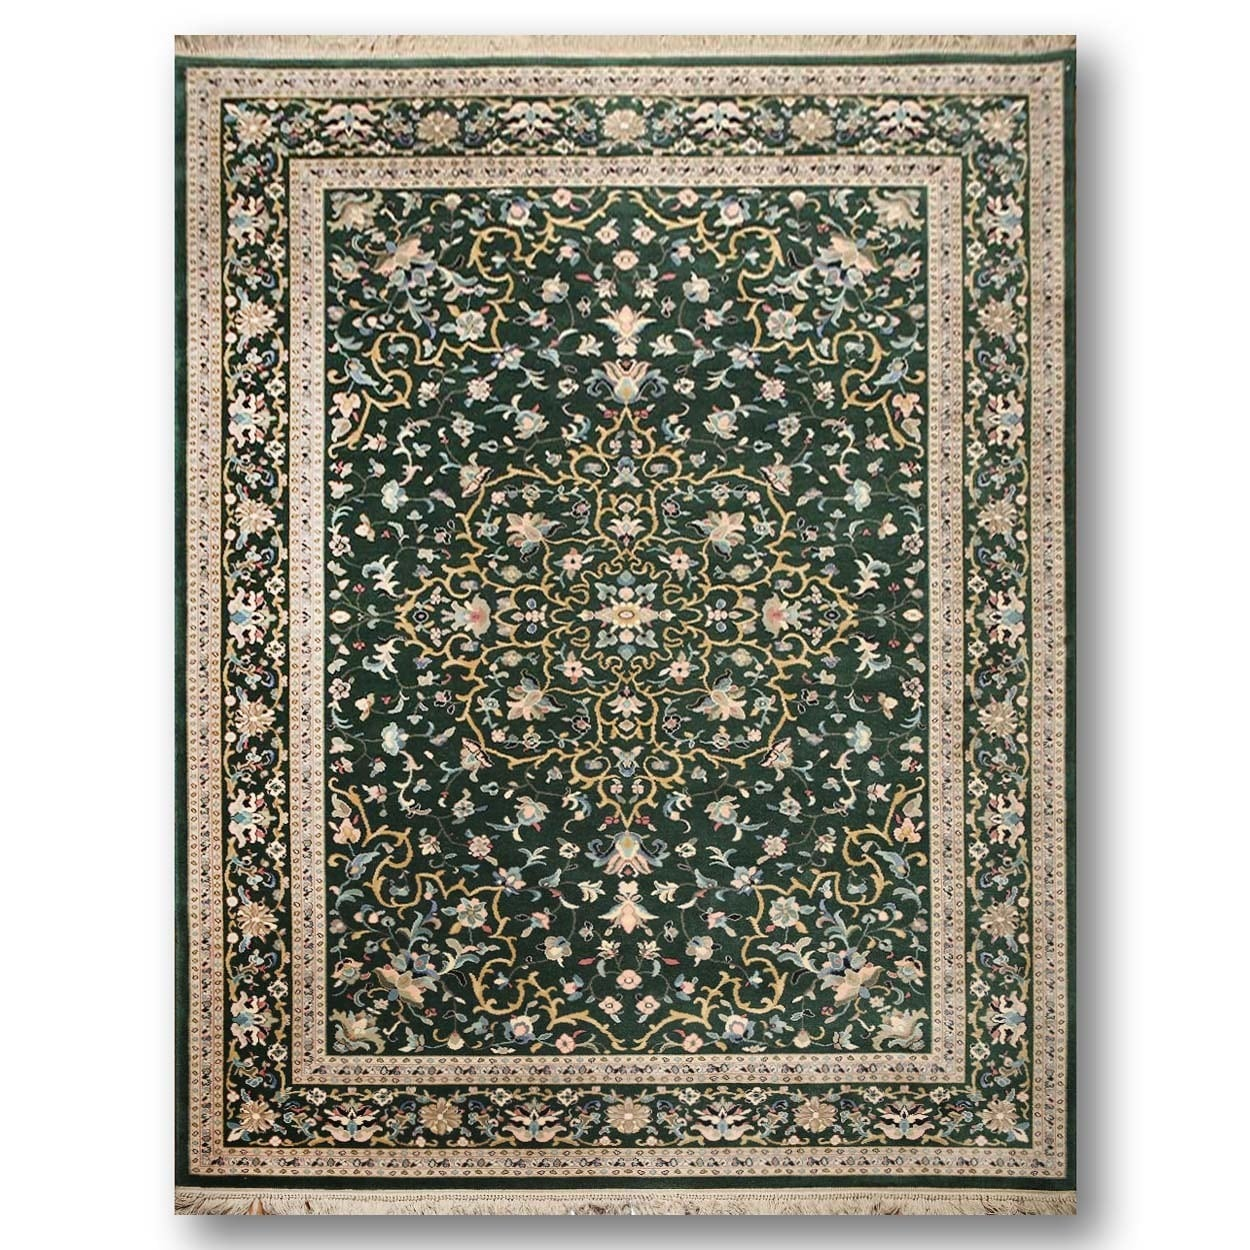 Karastan Tabriz Green Wool Handwoven Persian Oriental Are...